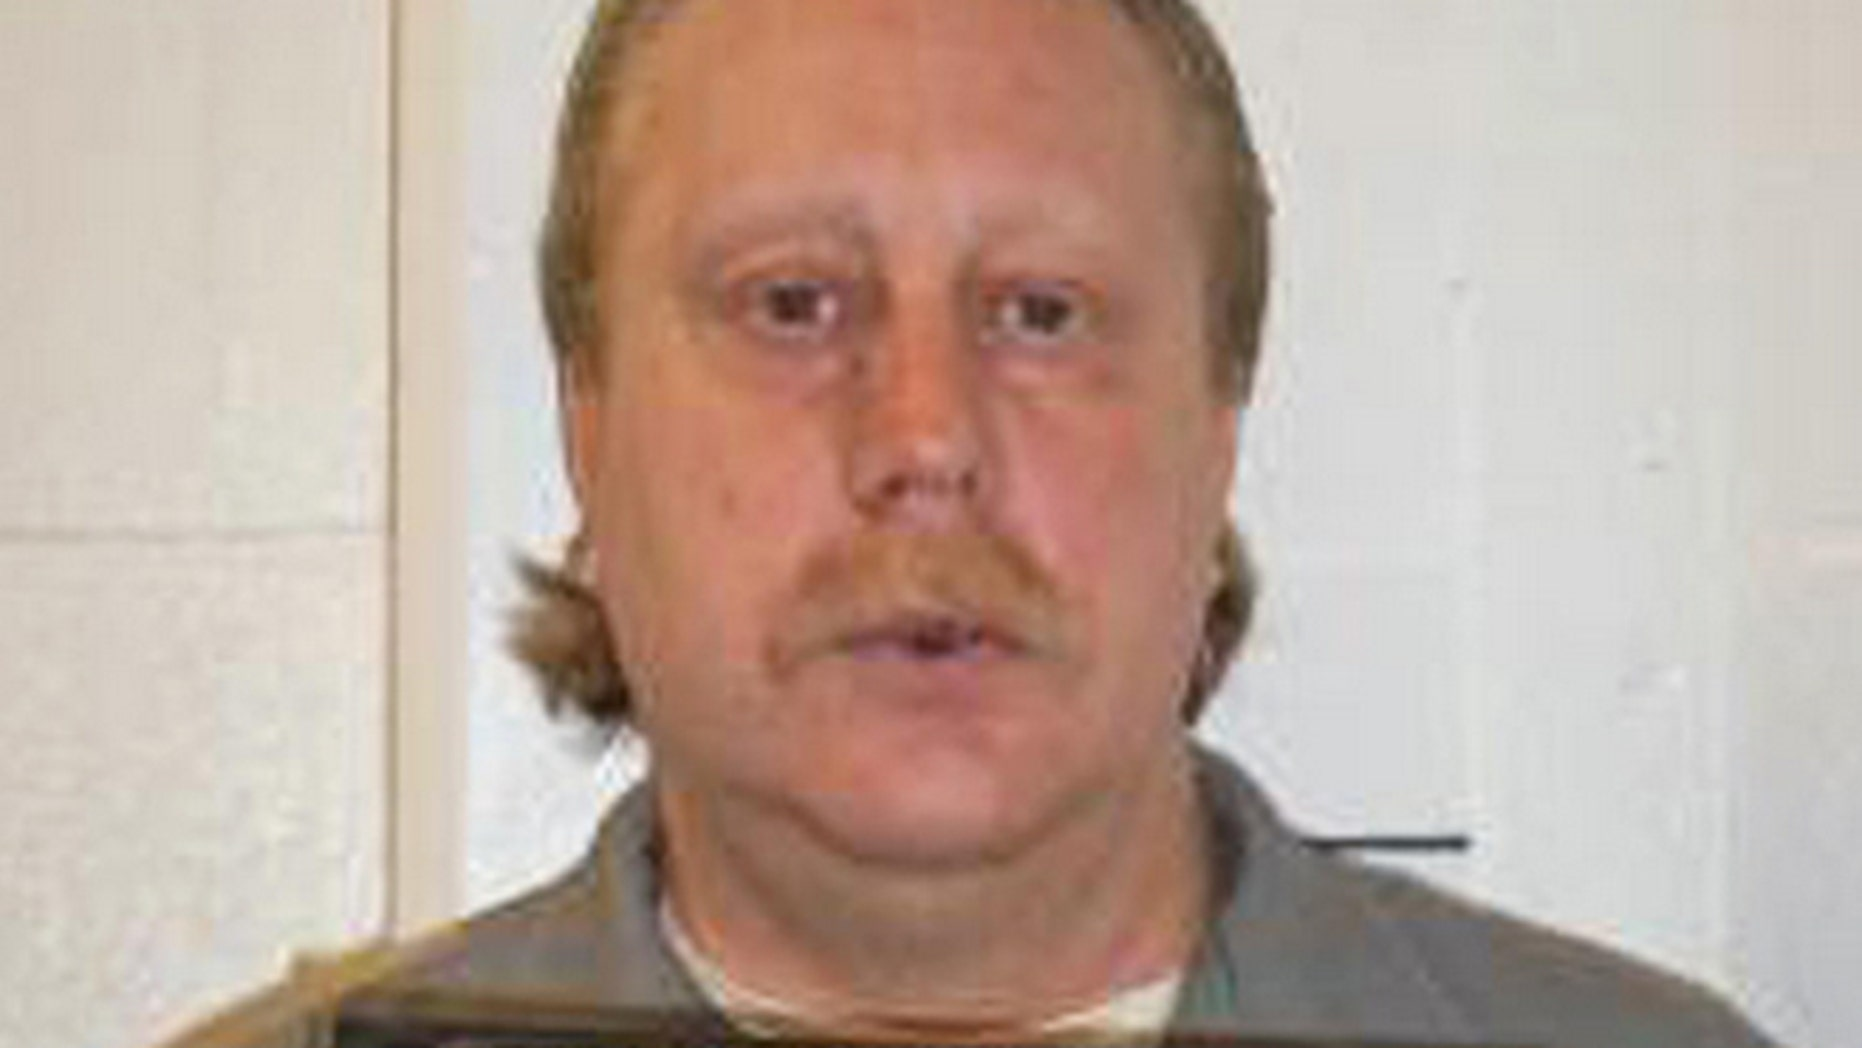 FILE 2014: Russell Bucklew is scheduled to die for killing a romantic rival as part of a crime spree in southeast Missouri in 1996.